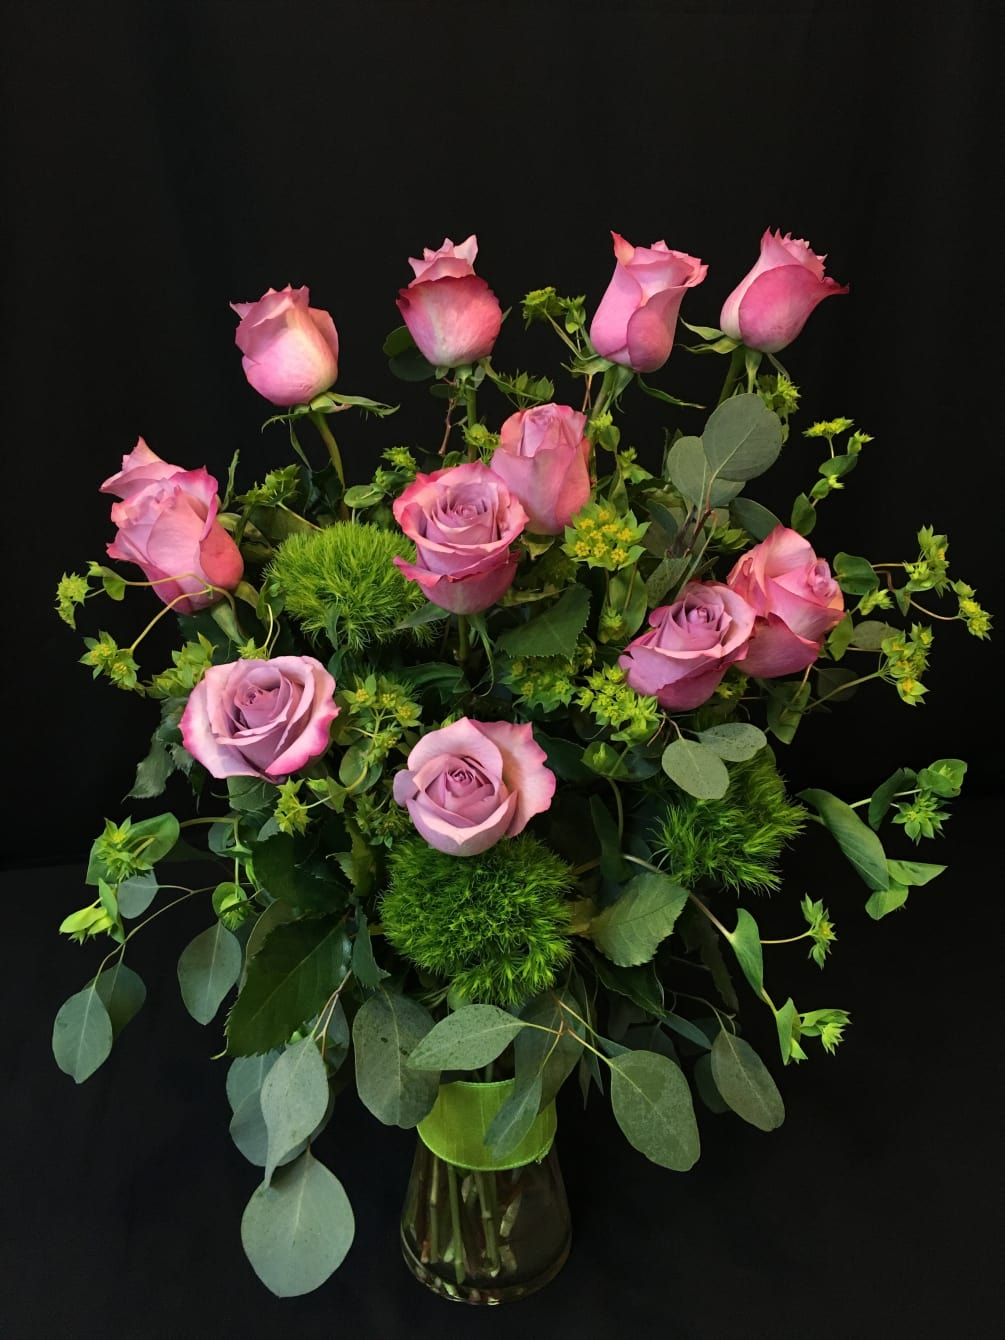 Arrangement Is About 3 Feet Tall Compare Our Premium Roses To